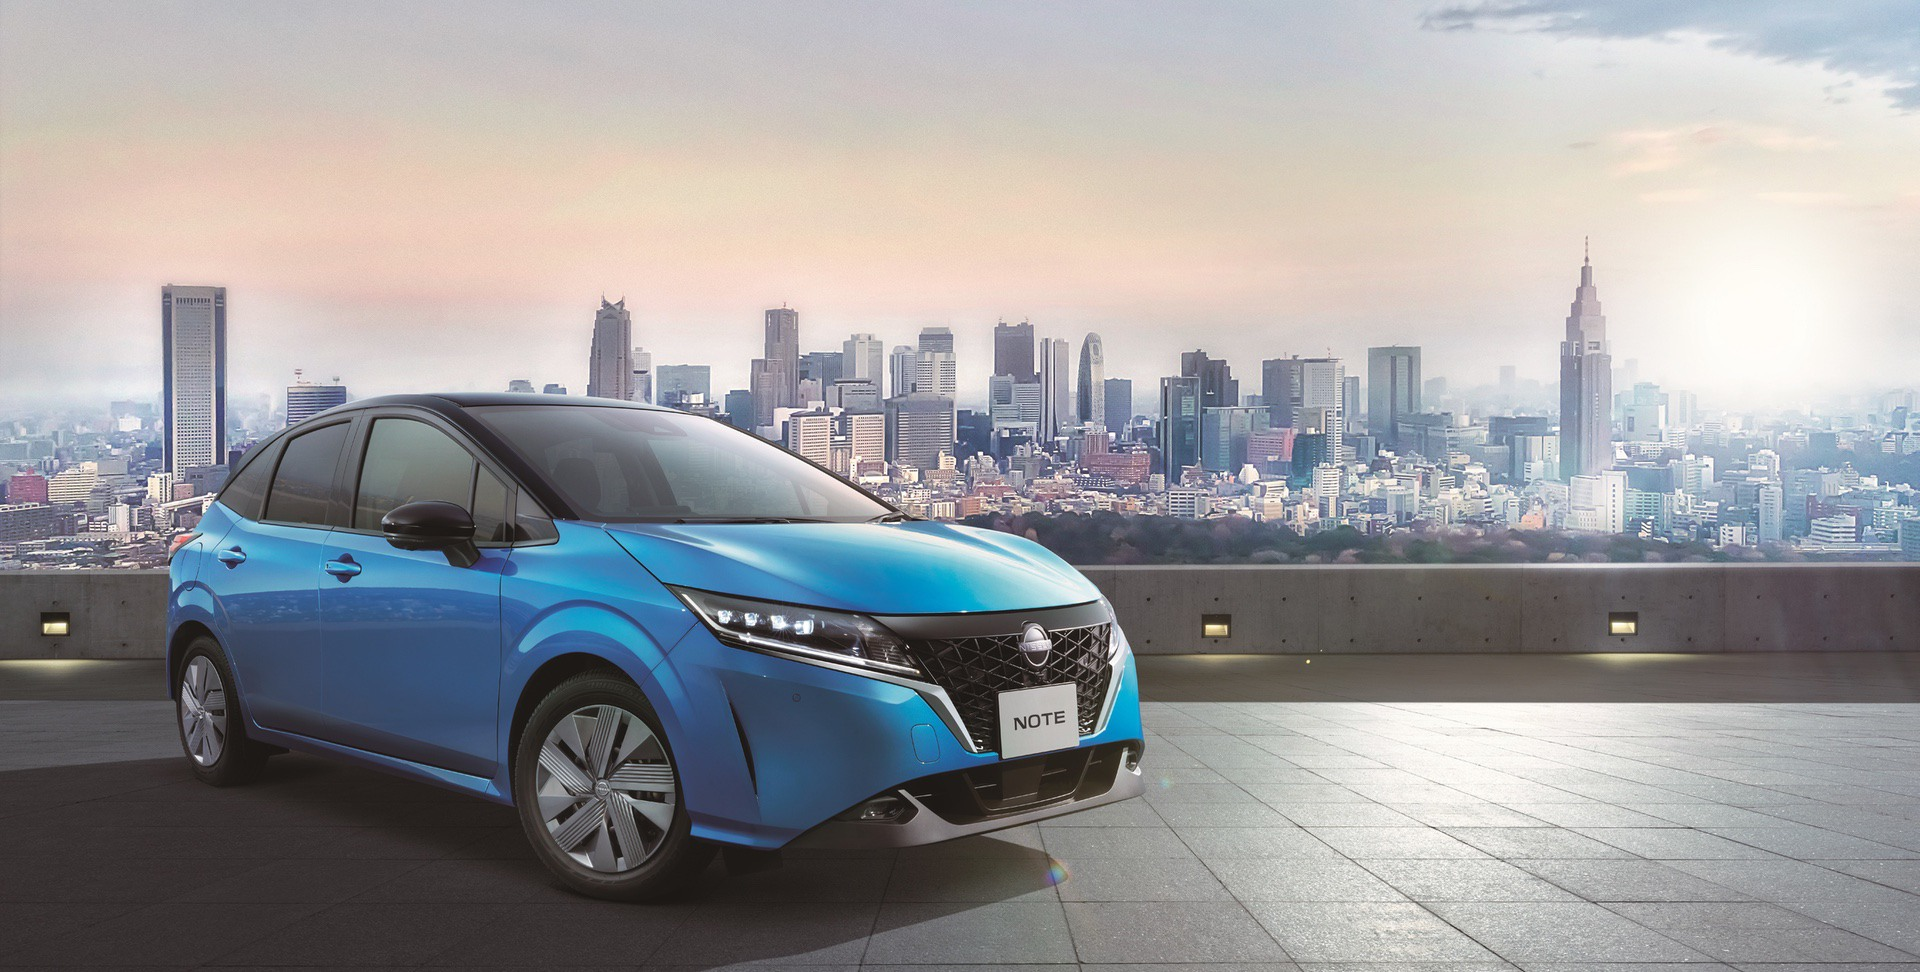 2021_Nissan_Note_0006